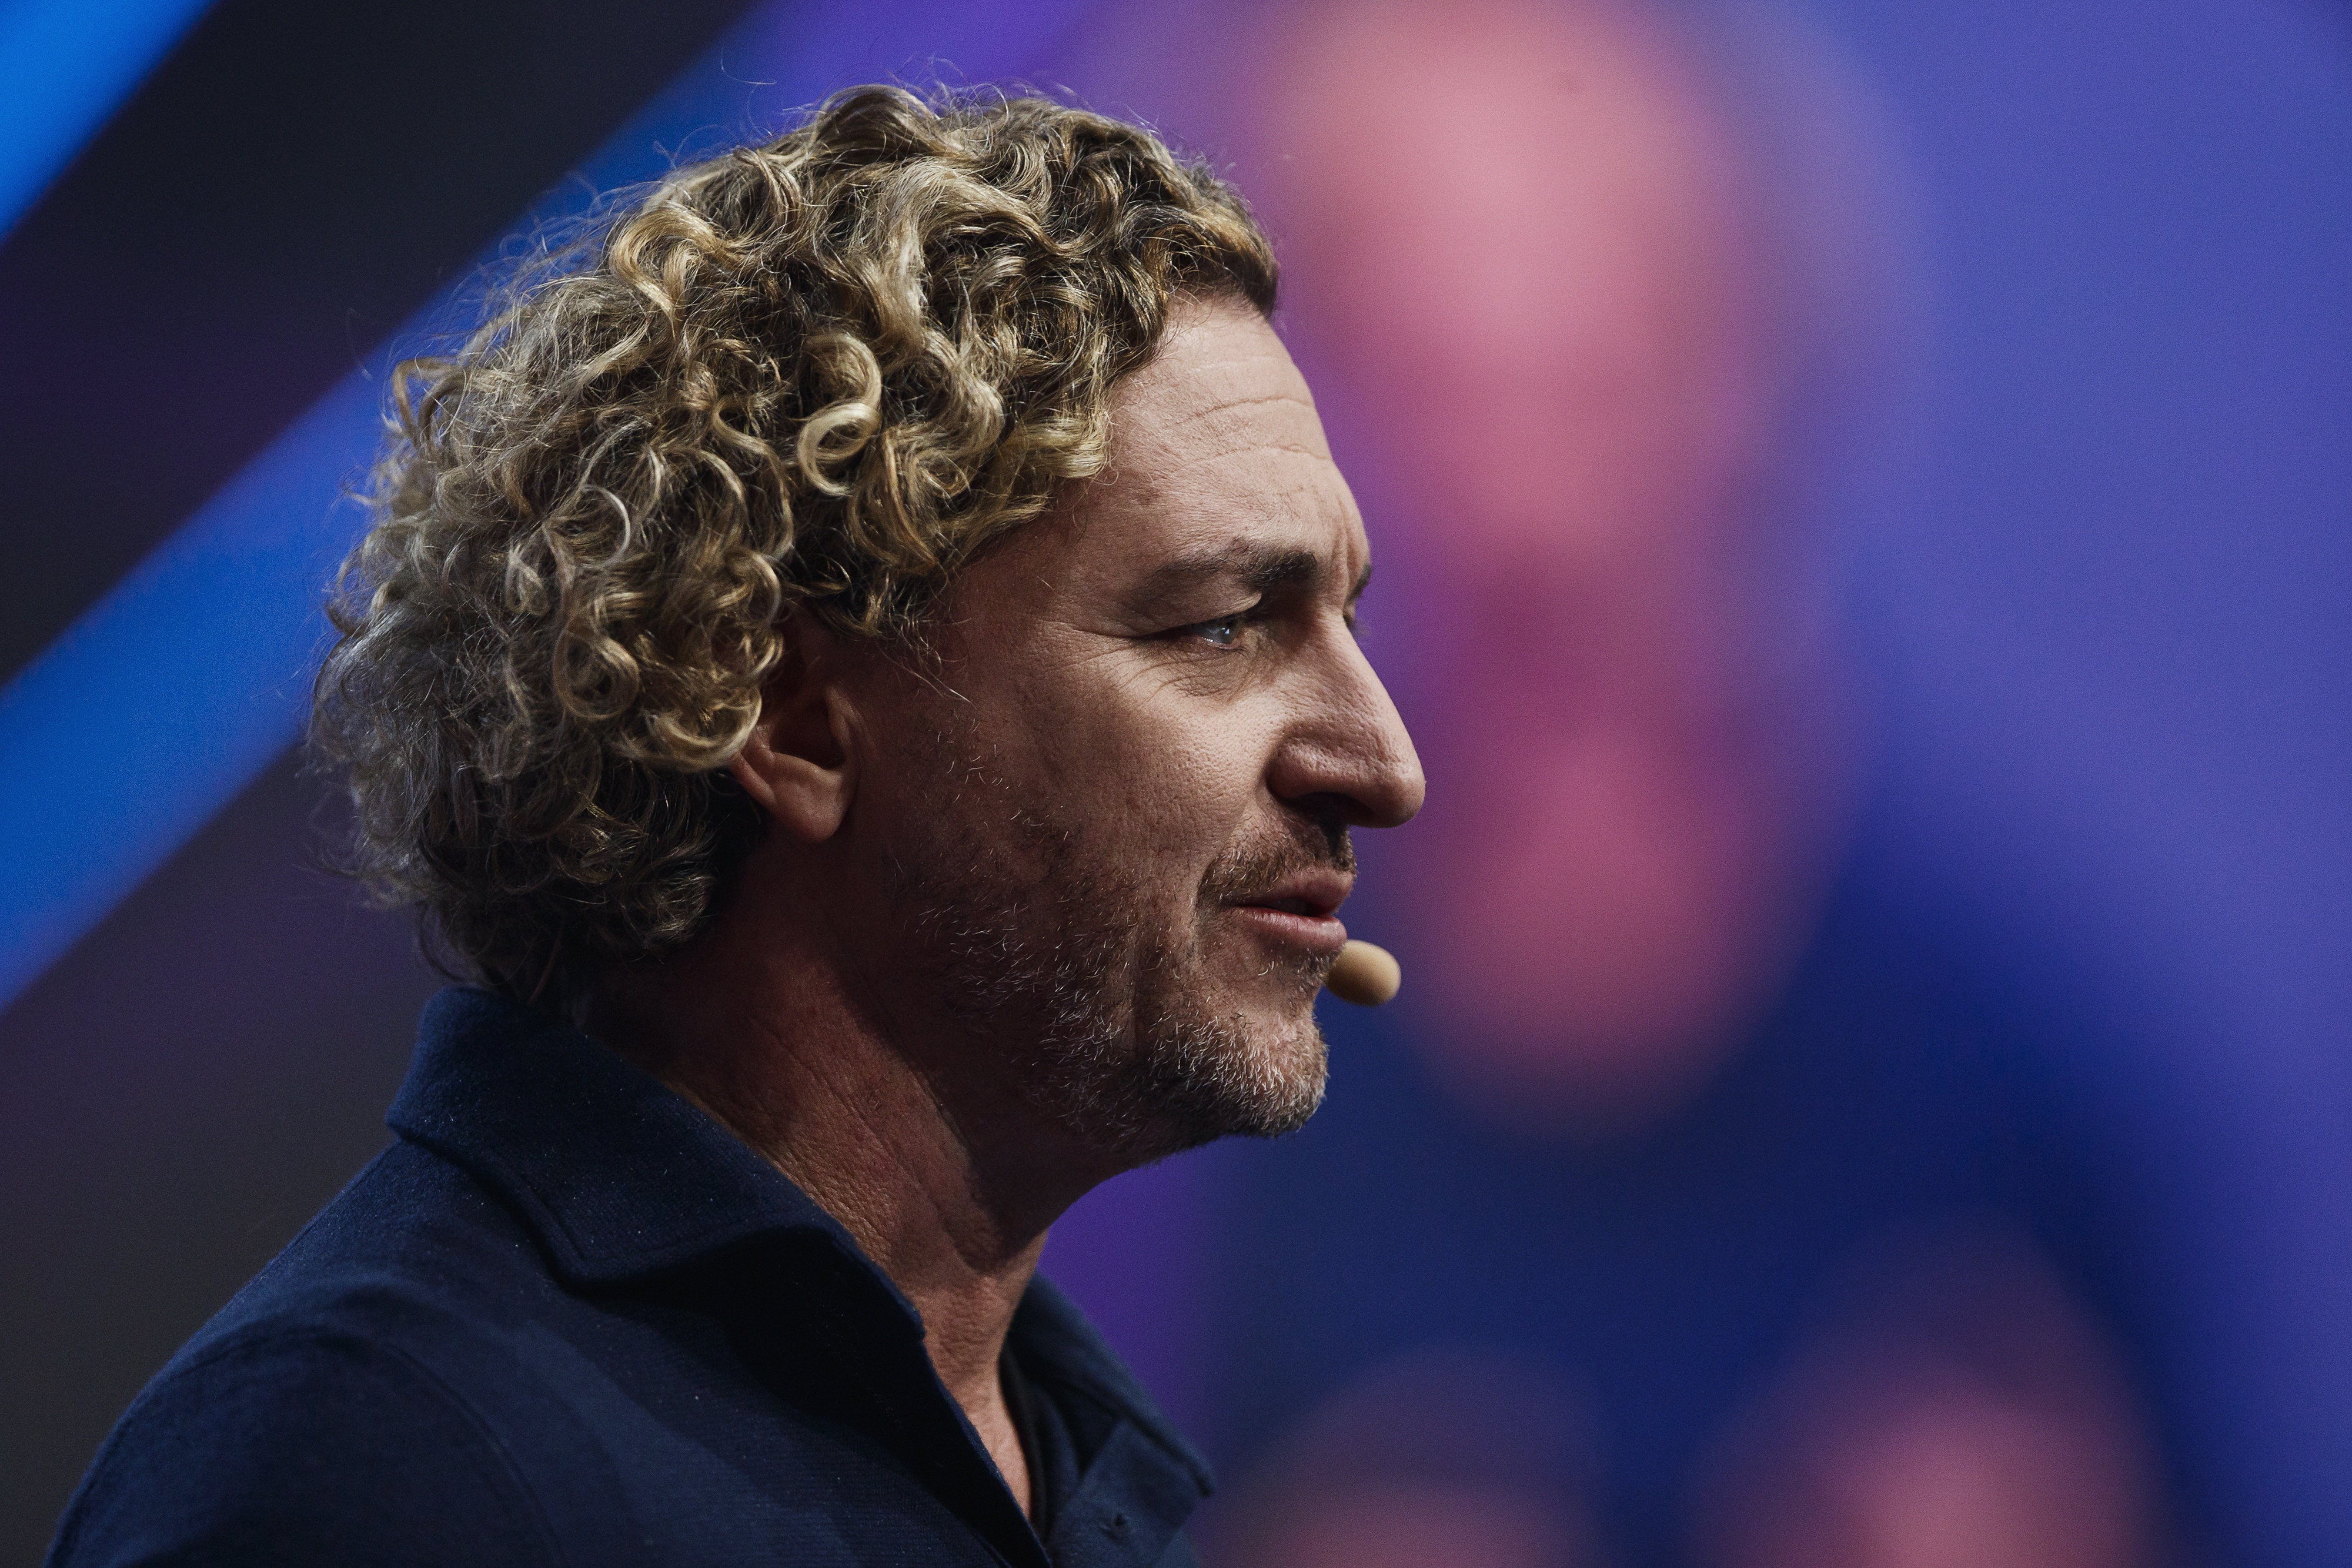 """Ken Mulvany, chairman and founder of BenevolentAI, opened the Founder Stage on Friday. His topic was a healthy one: can technology cure disease? """"In health care, AI is the new black,"""" he said."""